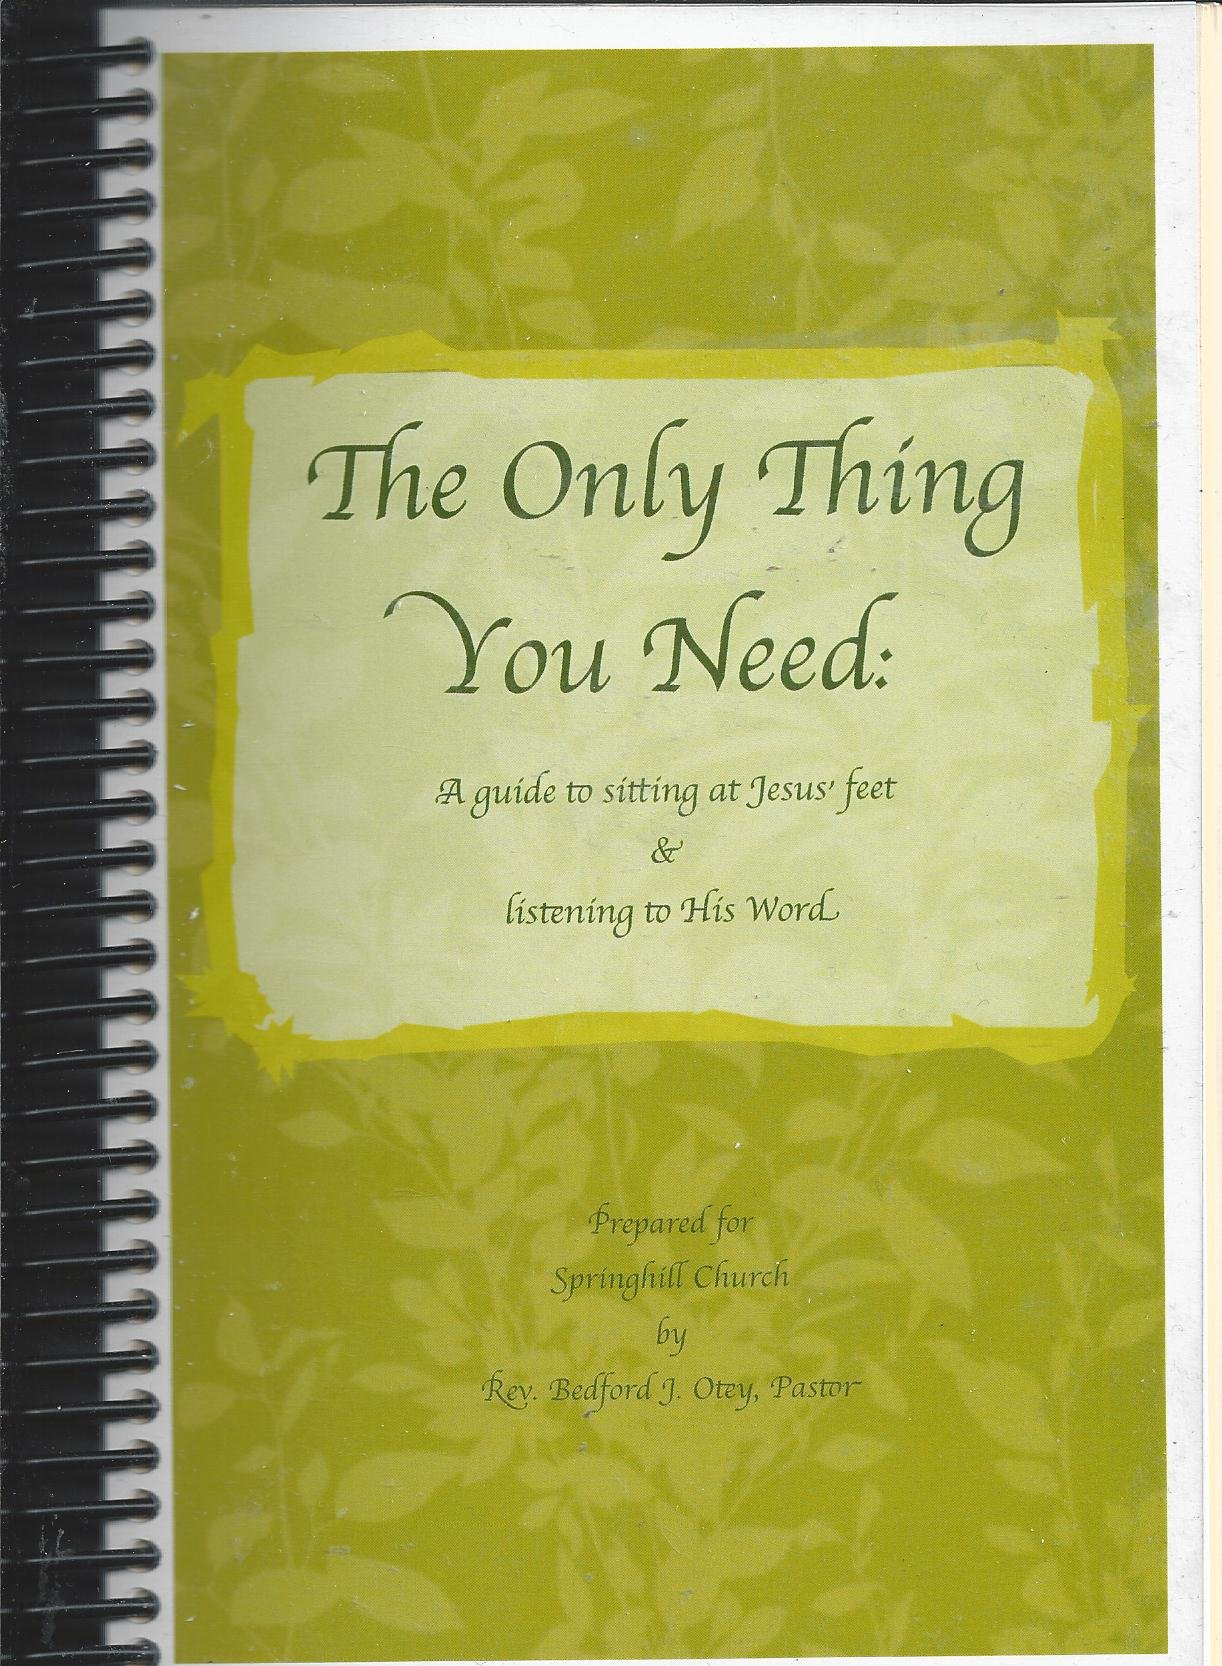 Download The Only Thing You Need: A Guide to Sitting at Jesus' Feet & Listening to His Word PDF